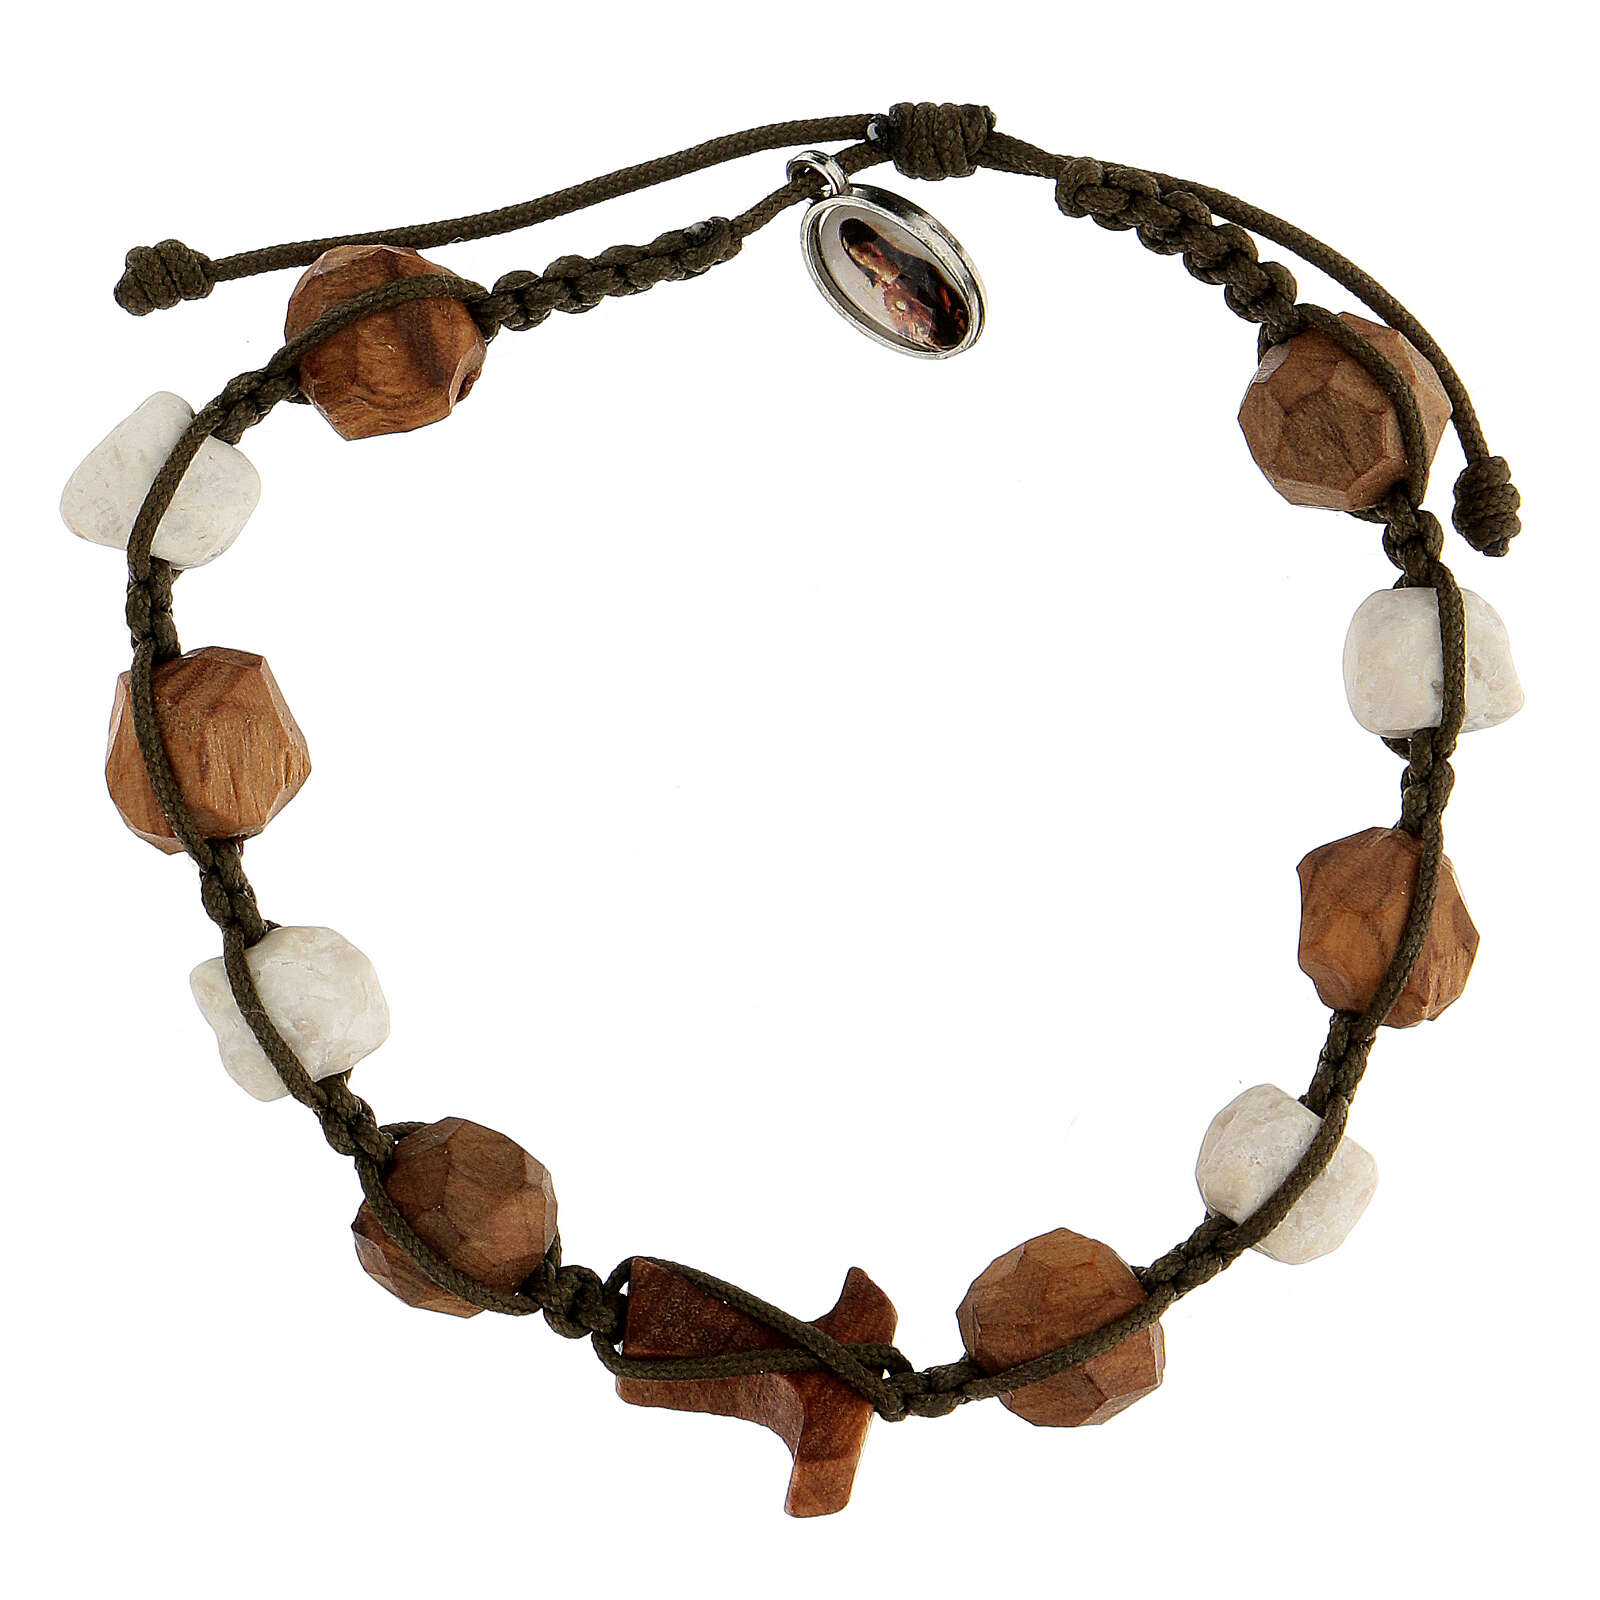 Bracelet with grains and tau cross in olive wood tied together by a brown rope 4